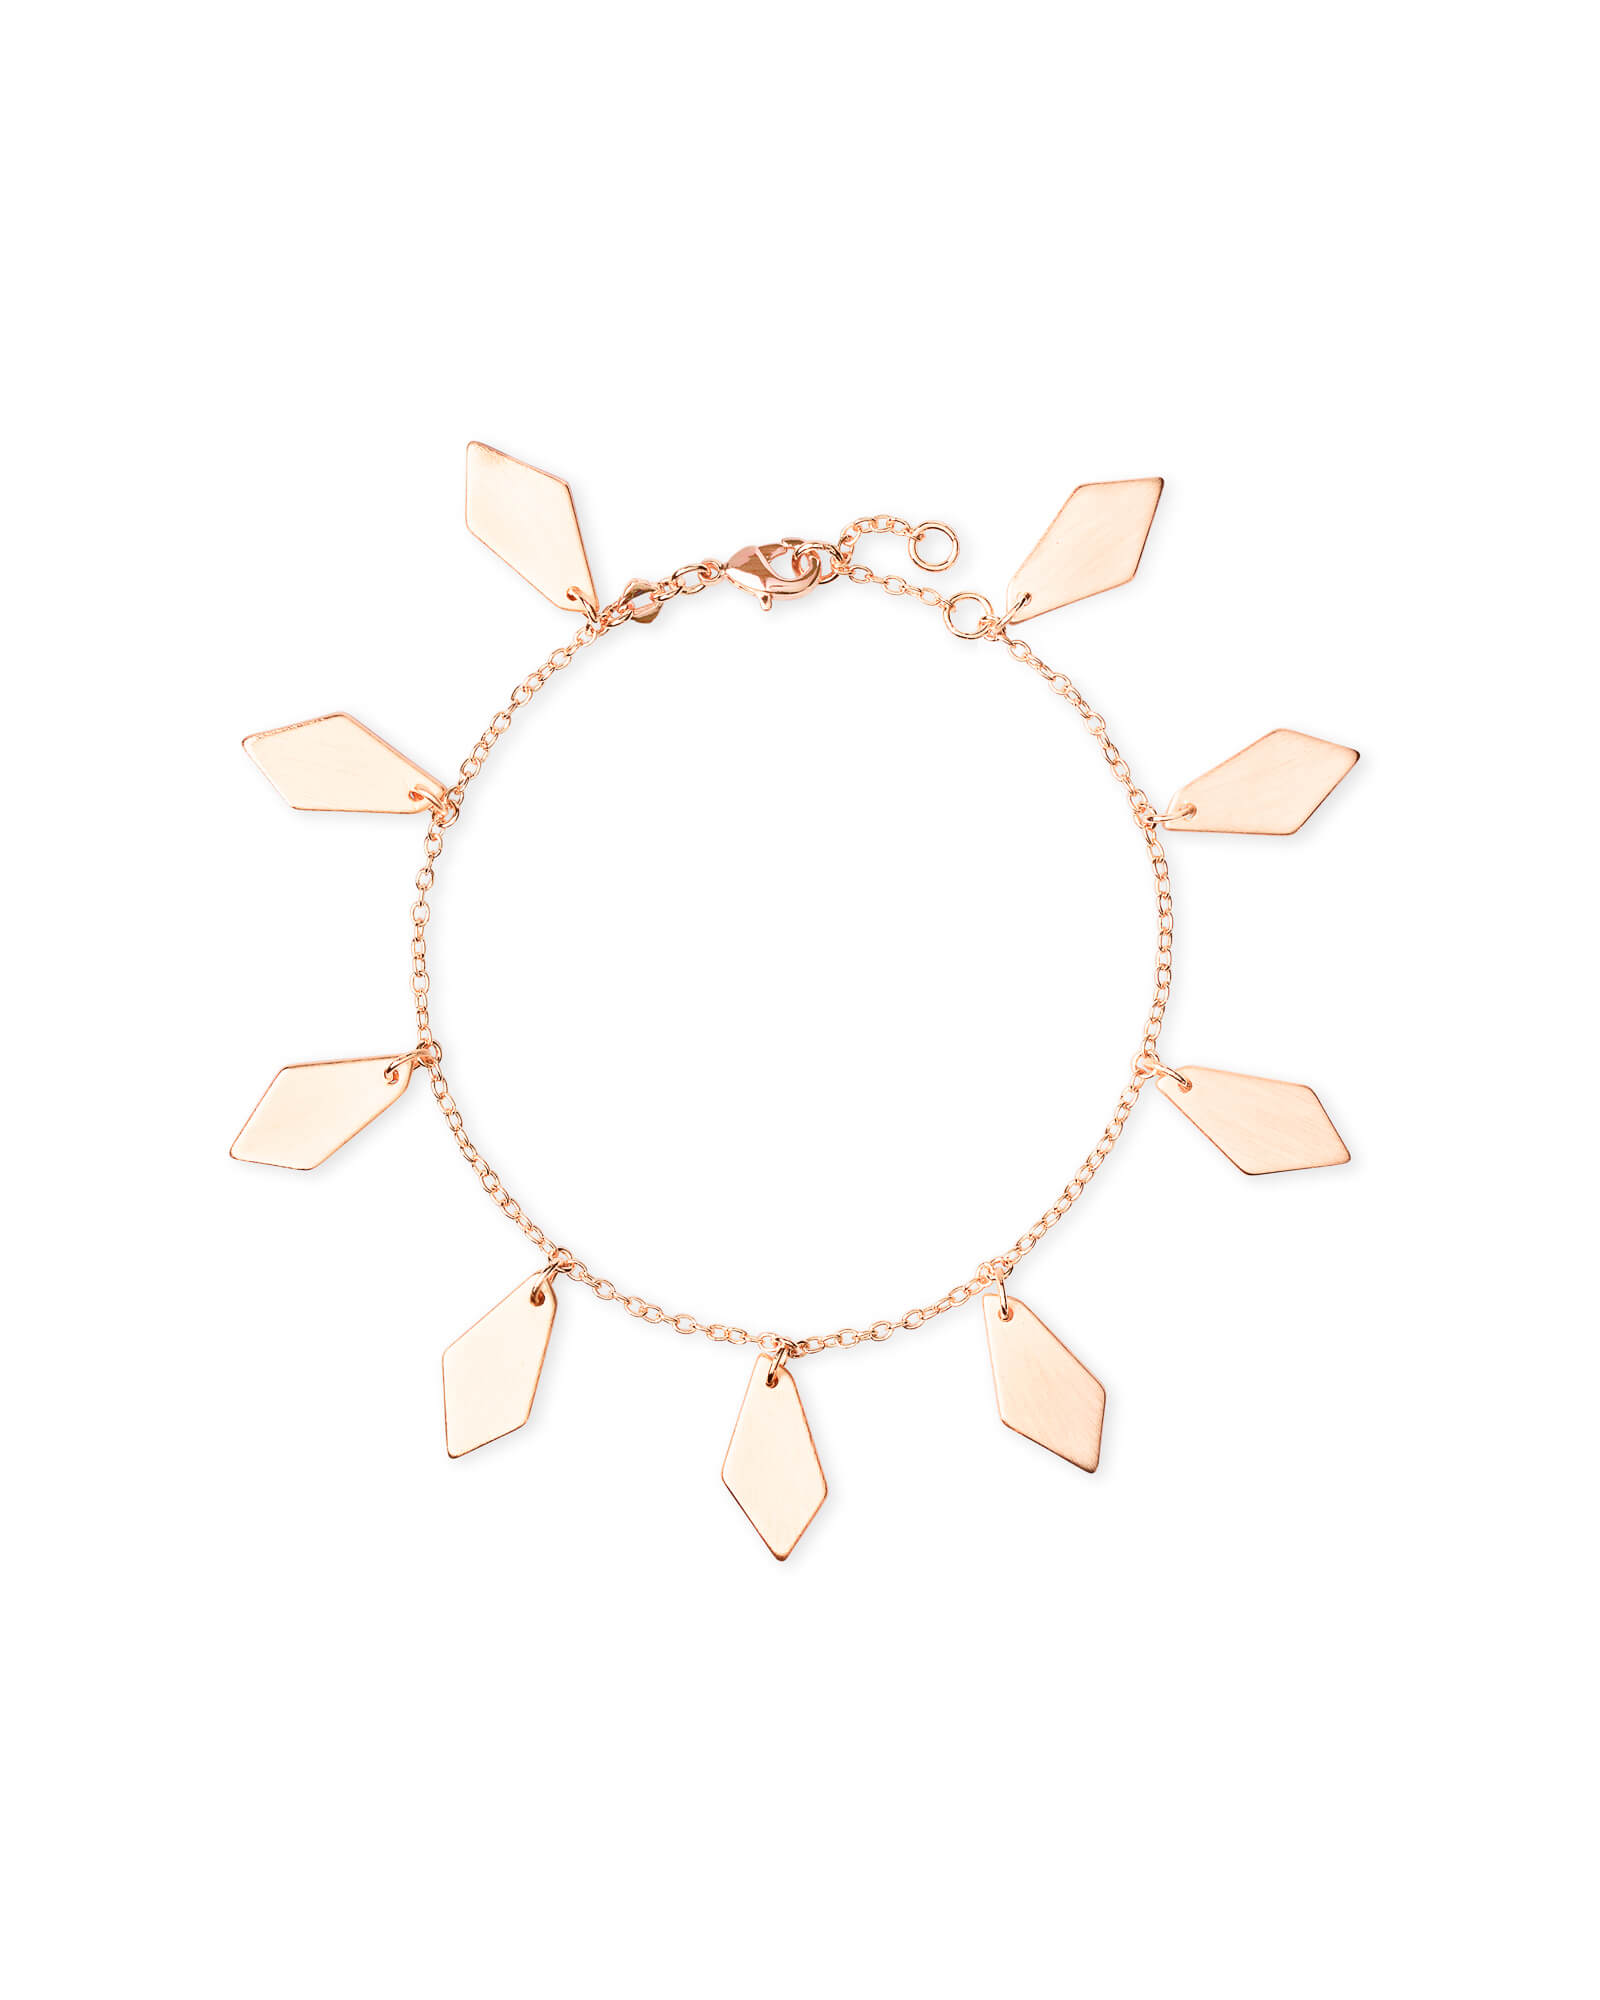 Pike Chain Bracelet In Rose Gold